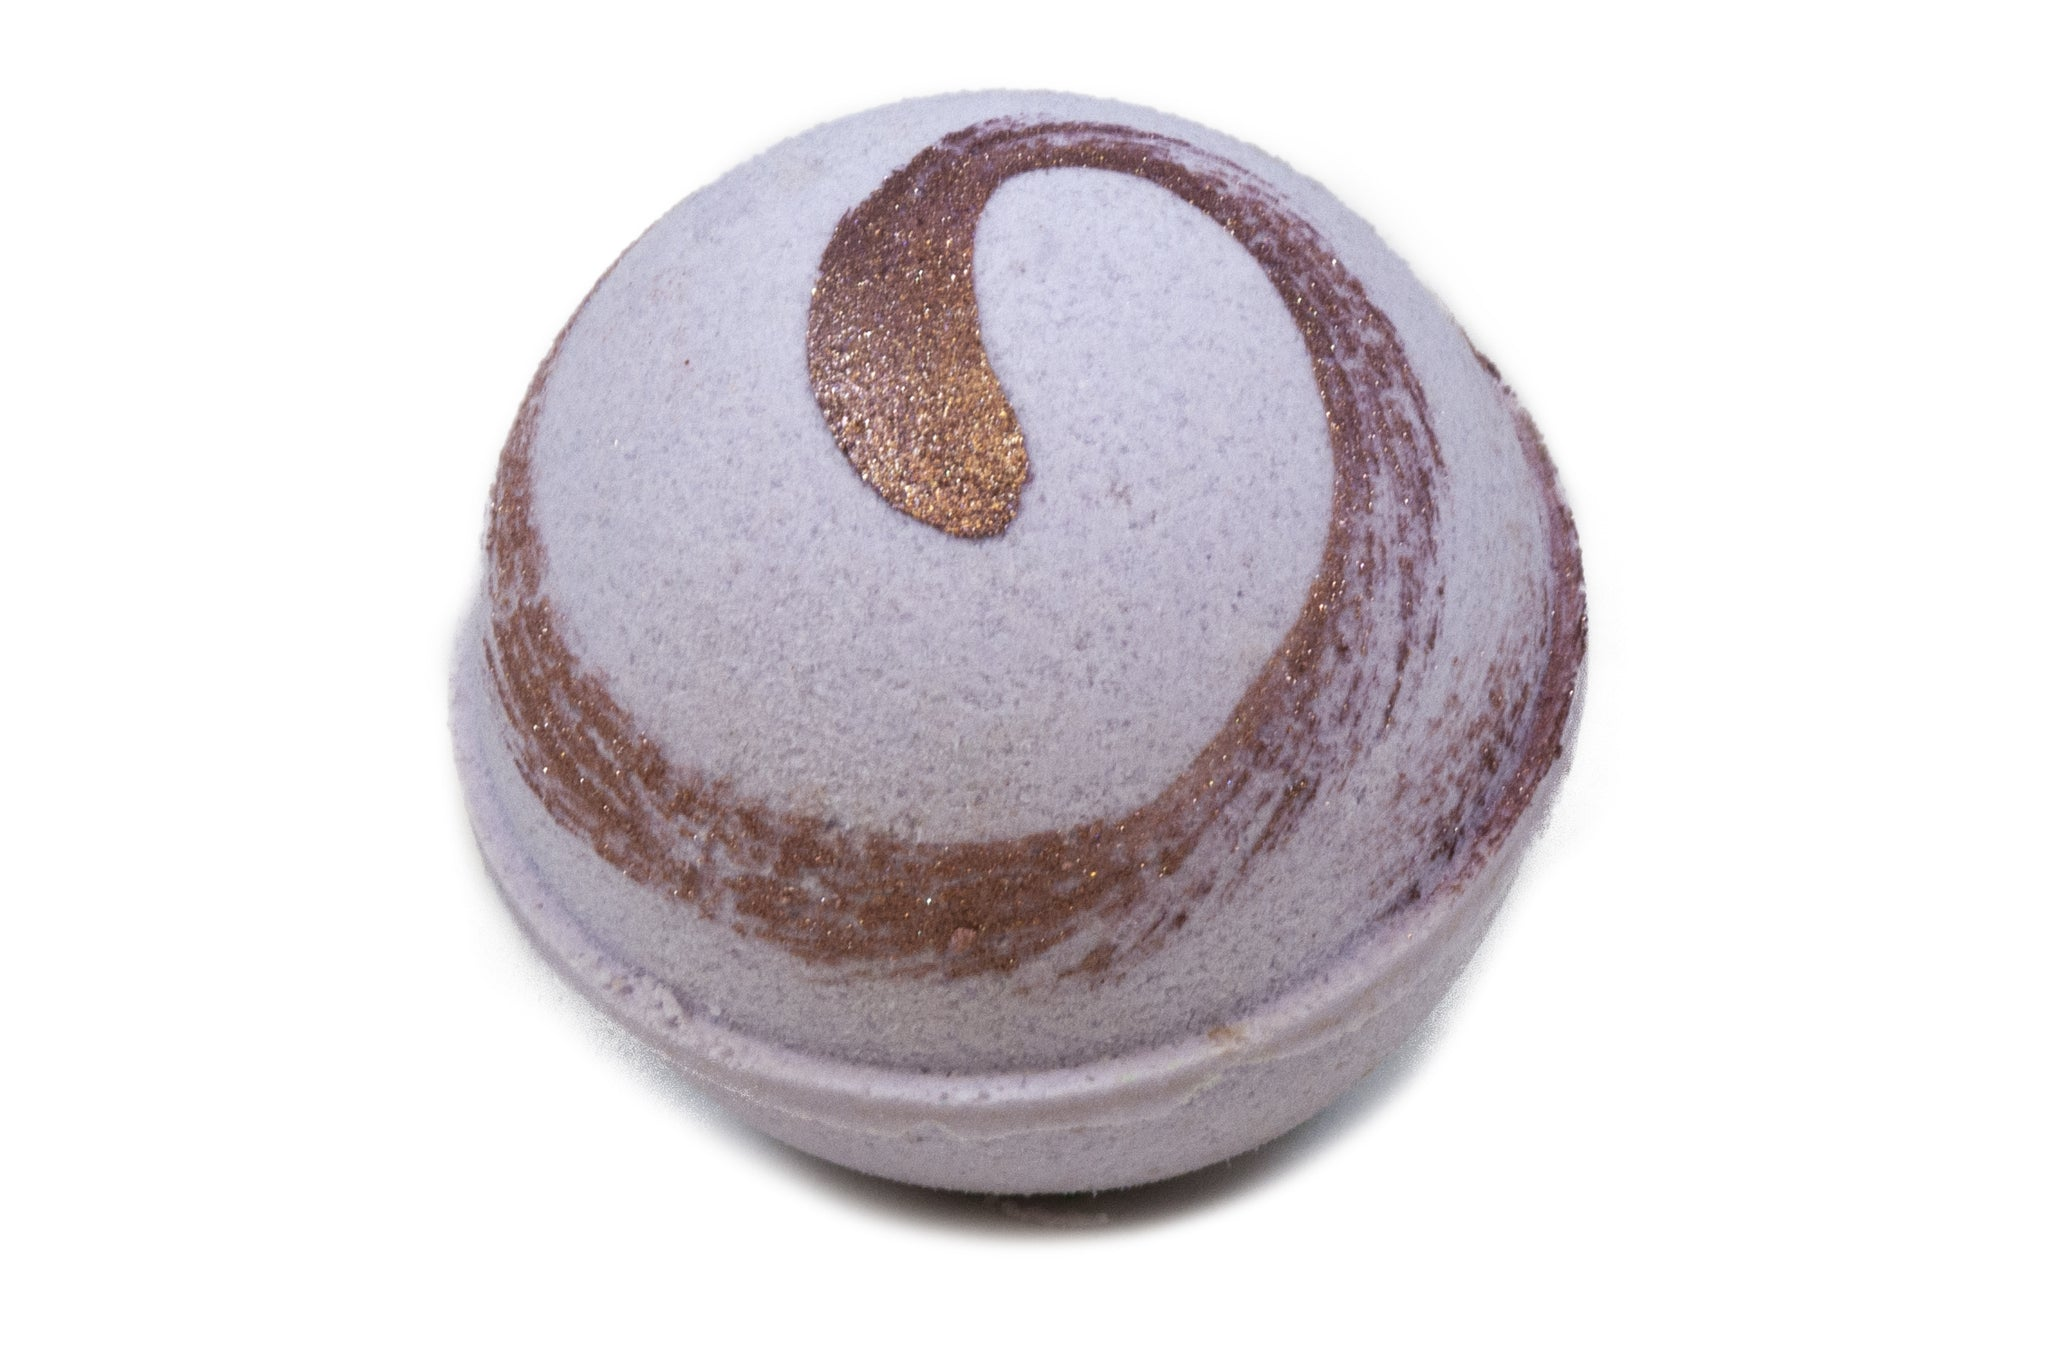 Seductress Bath Bomb - 4.5 oz